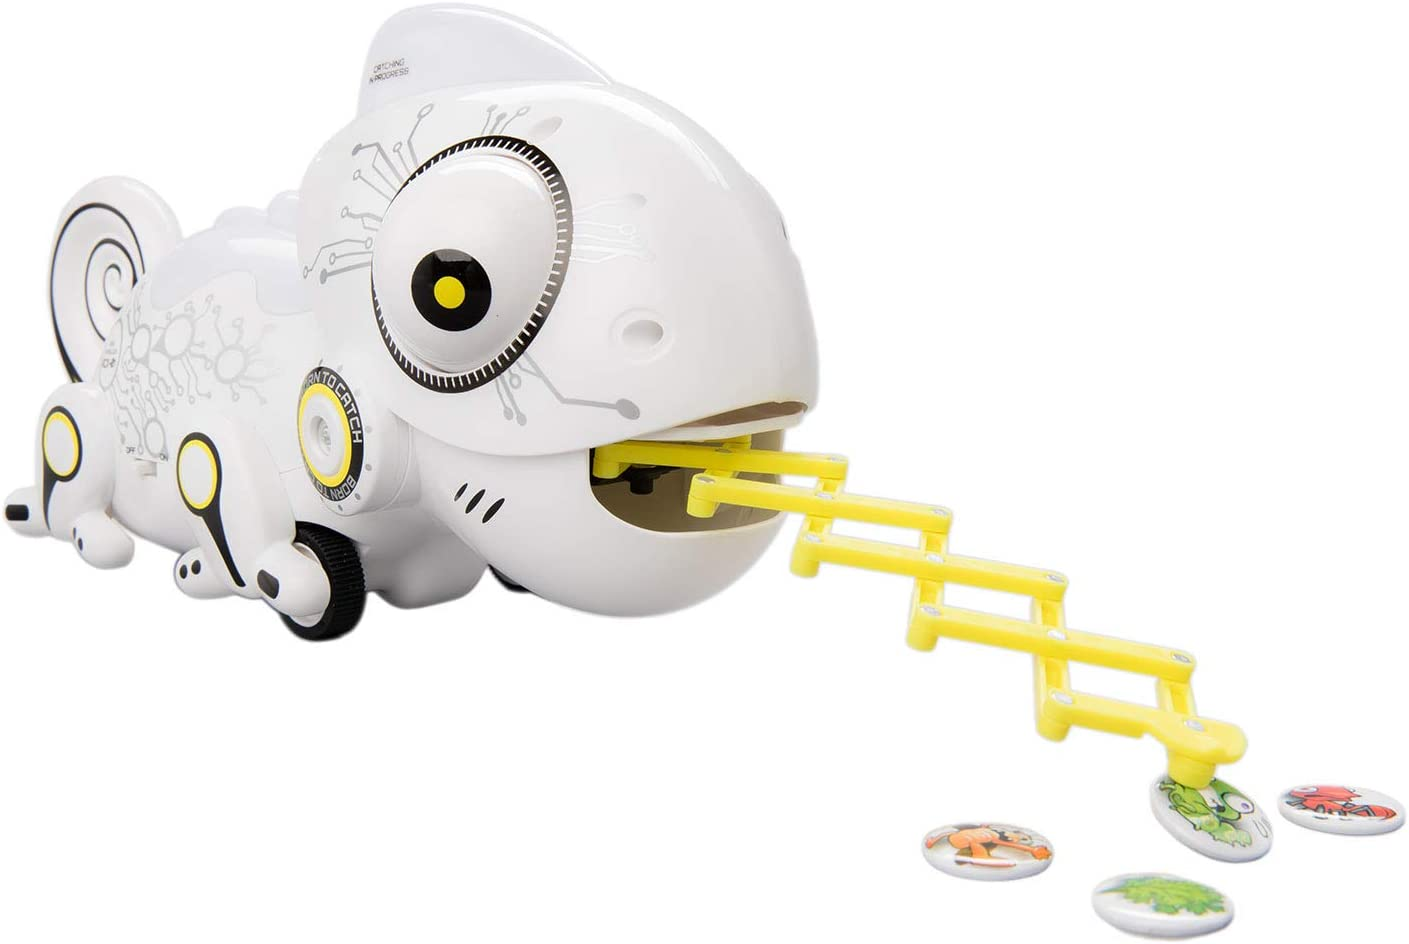 Amazon.es: Silverlit- Robo Camaleon, Multicolor (88538)